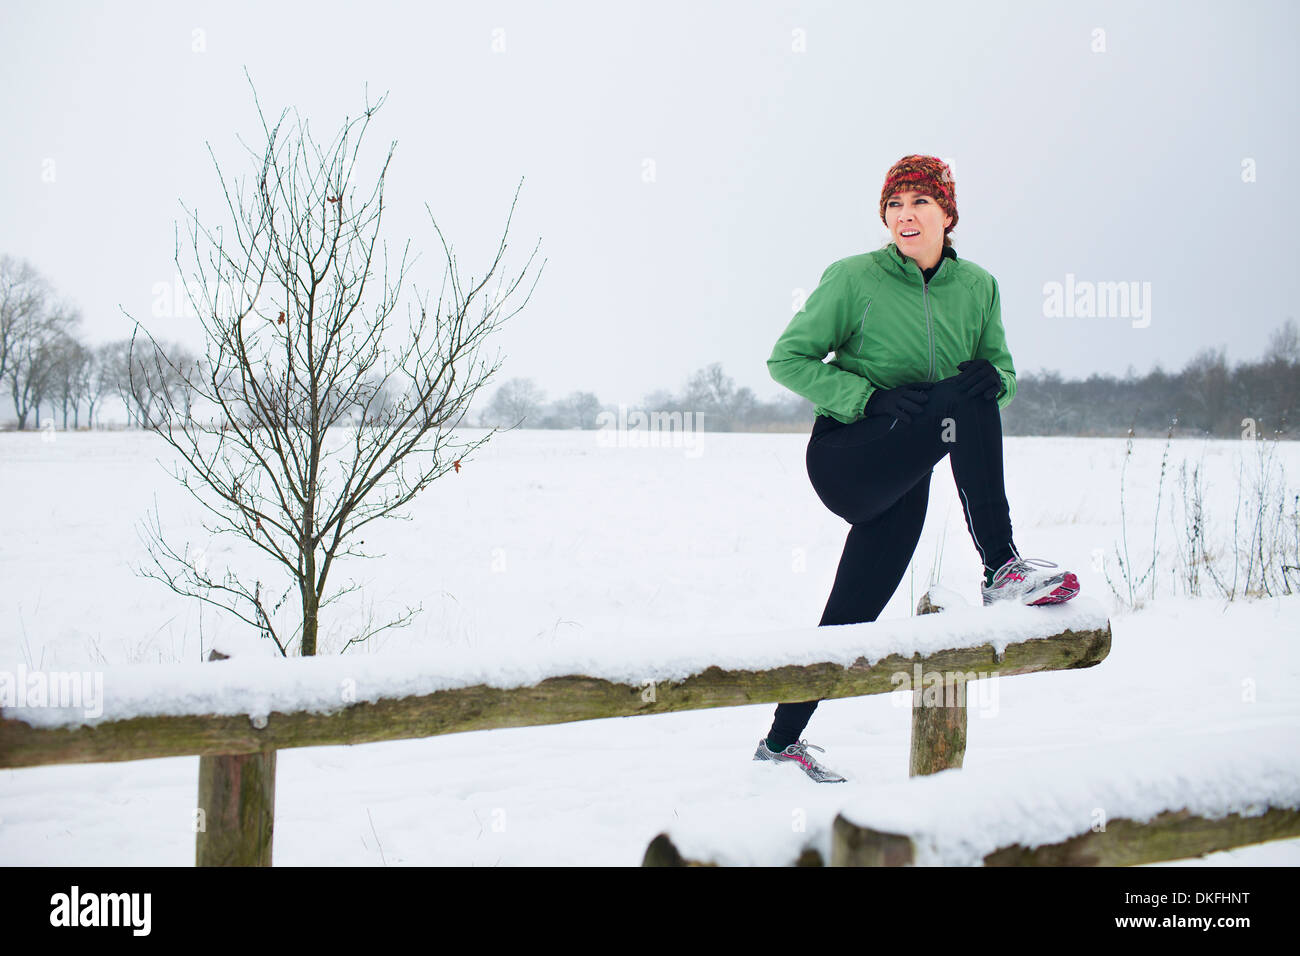 Female jogger stretching before run in snow covered scene - Stock Image